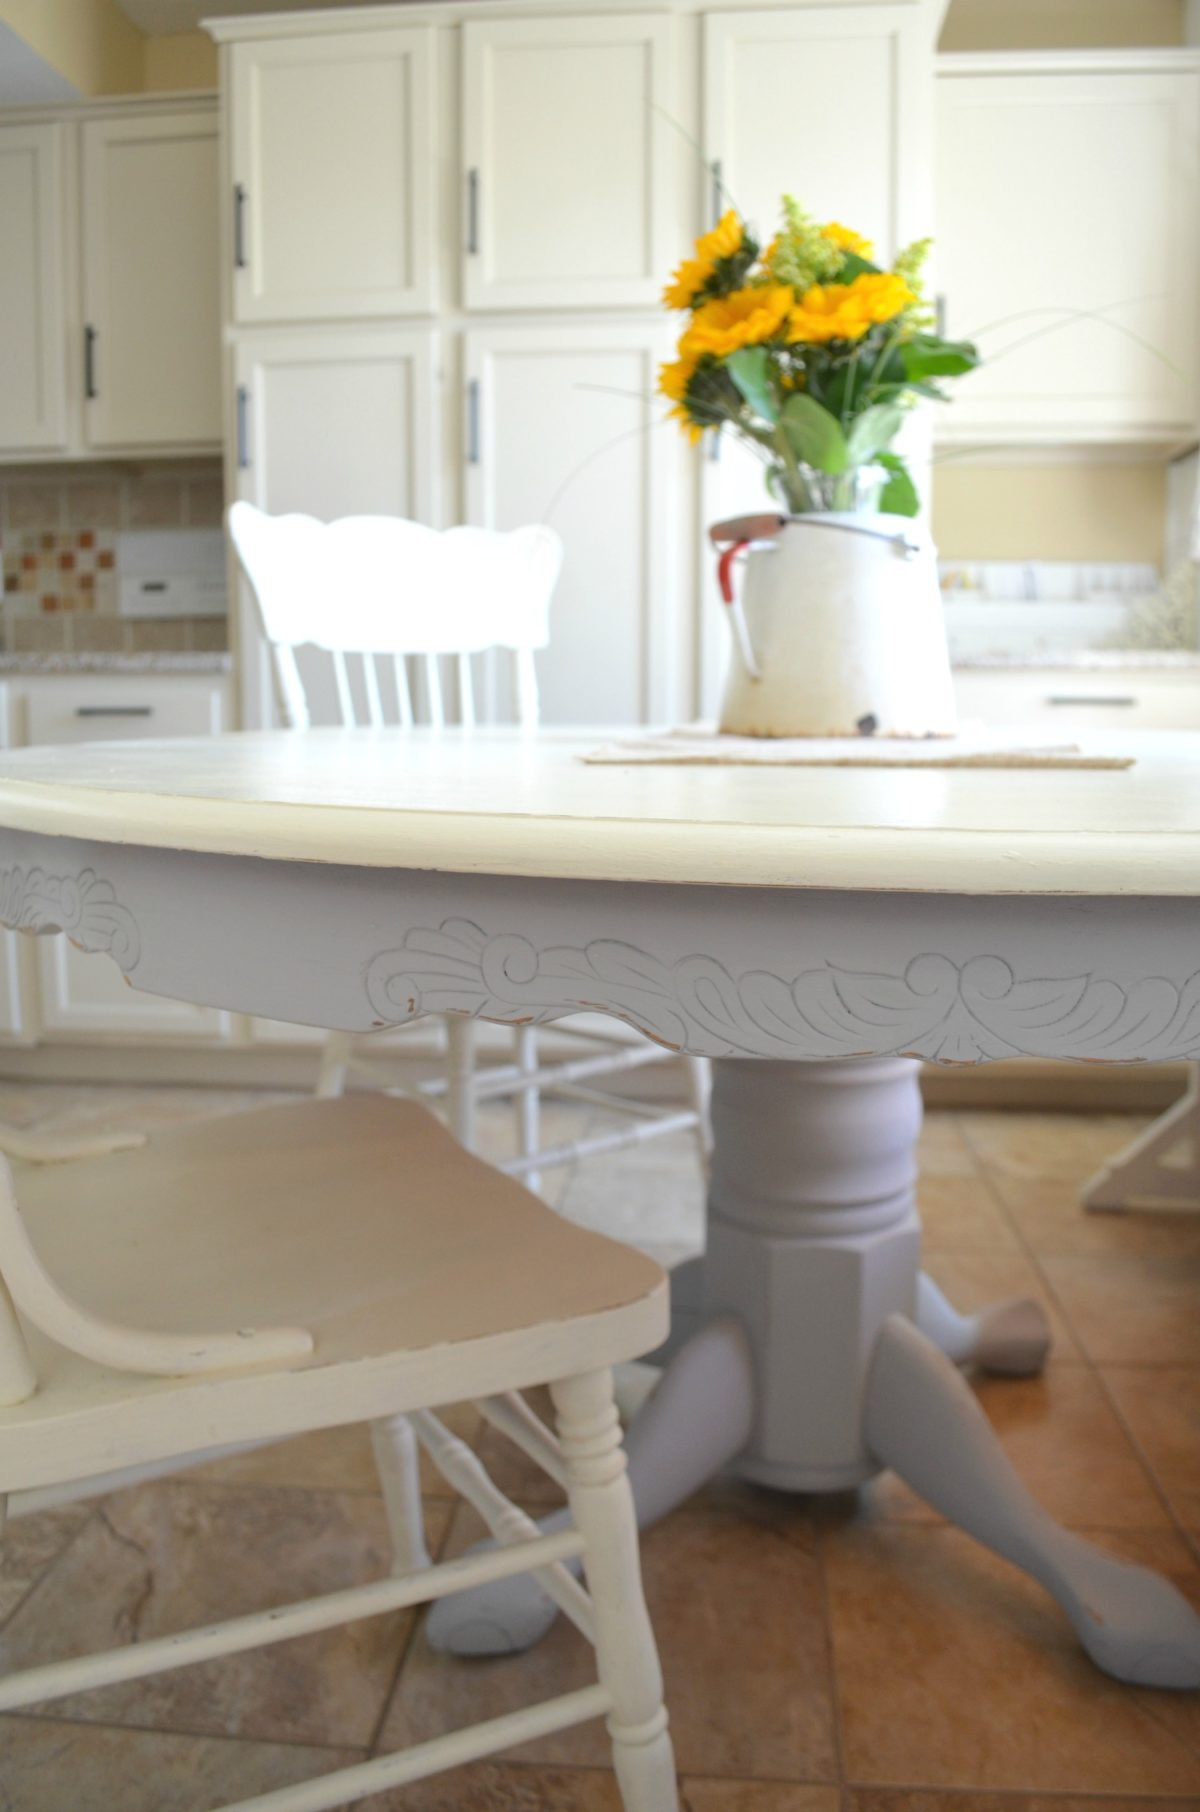 Ideas For Painting A Kitchen Table Part - 44: DIY Chalk Painted Farmhouse Style Table